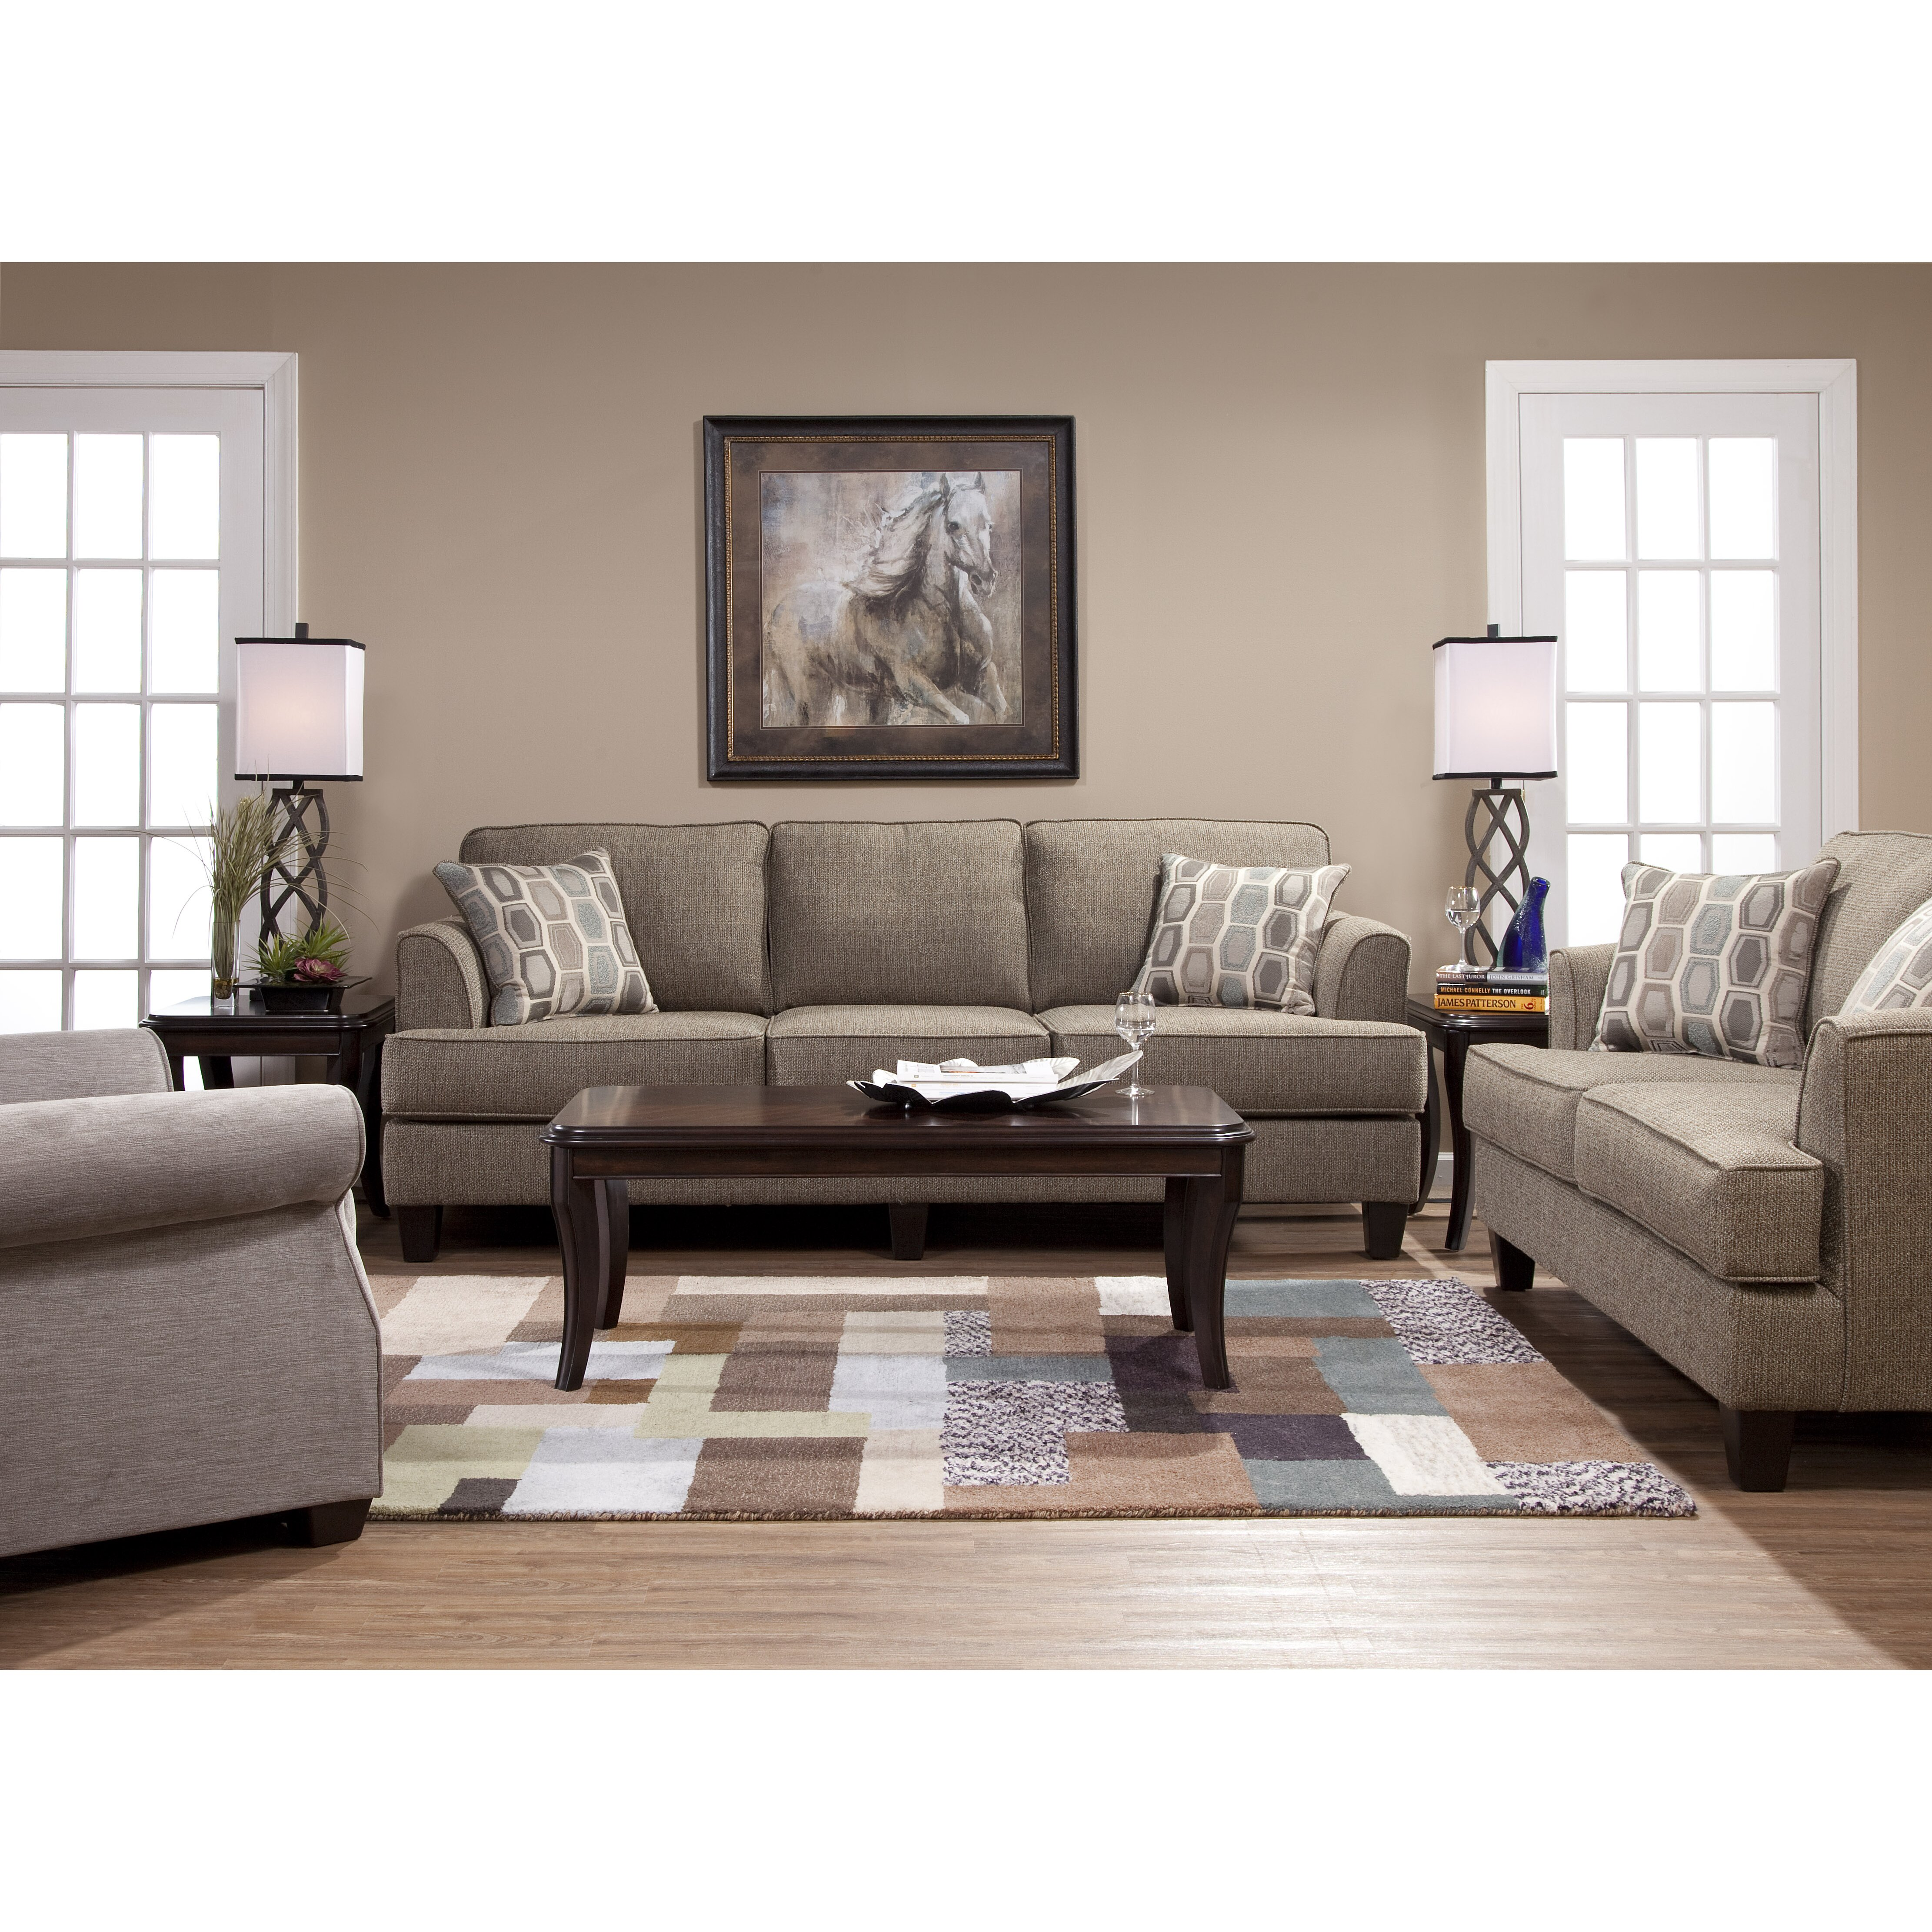 Red barrel studio serta upholstery dallas living room Living room furniture dallas